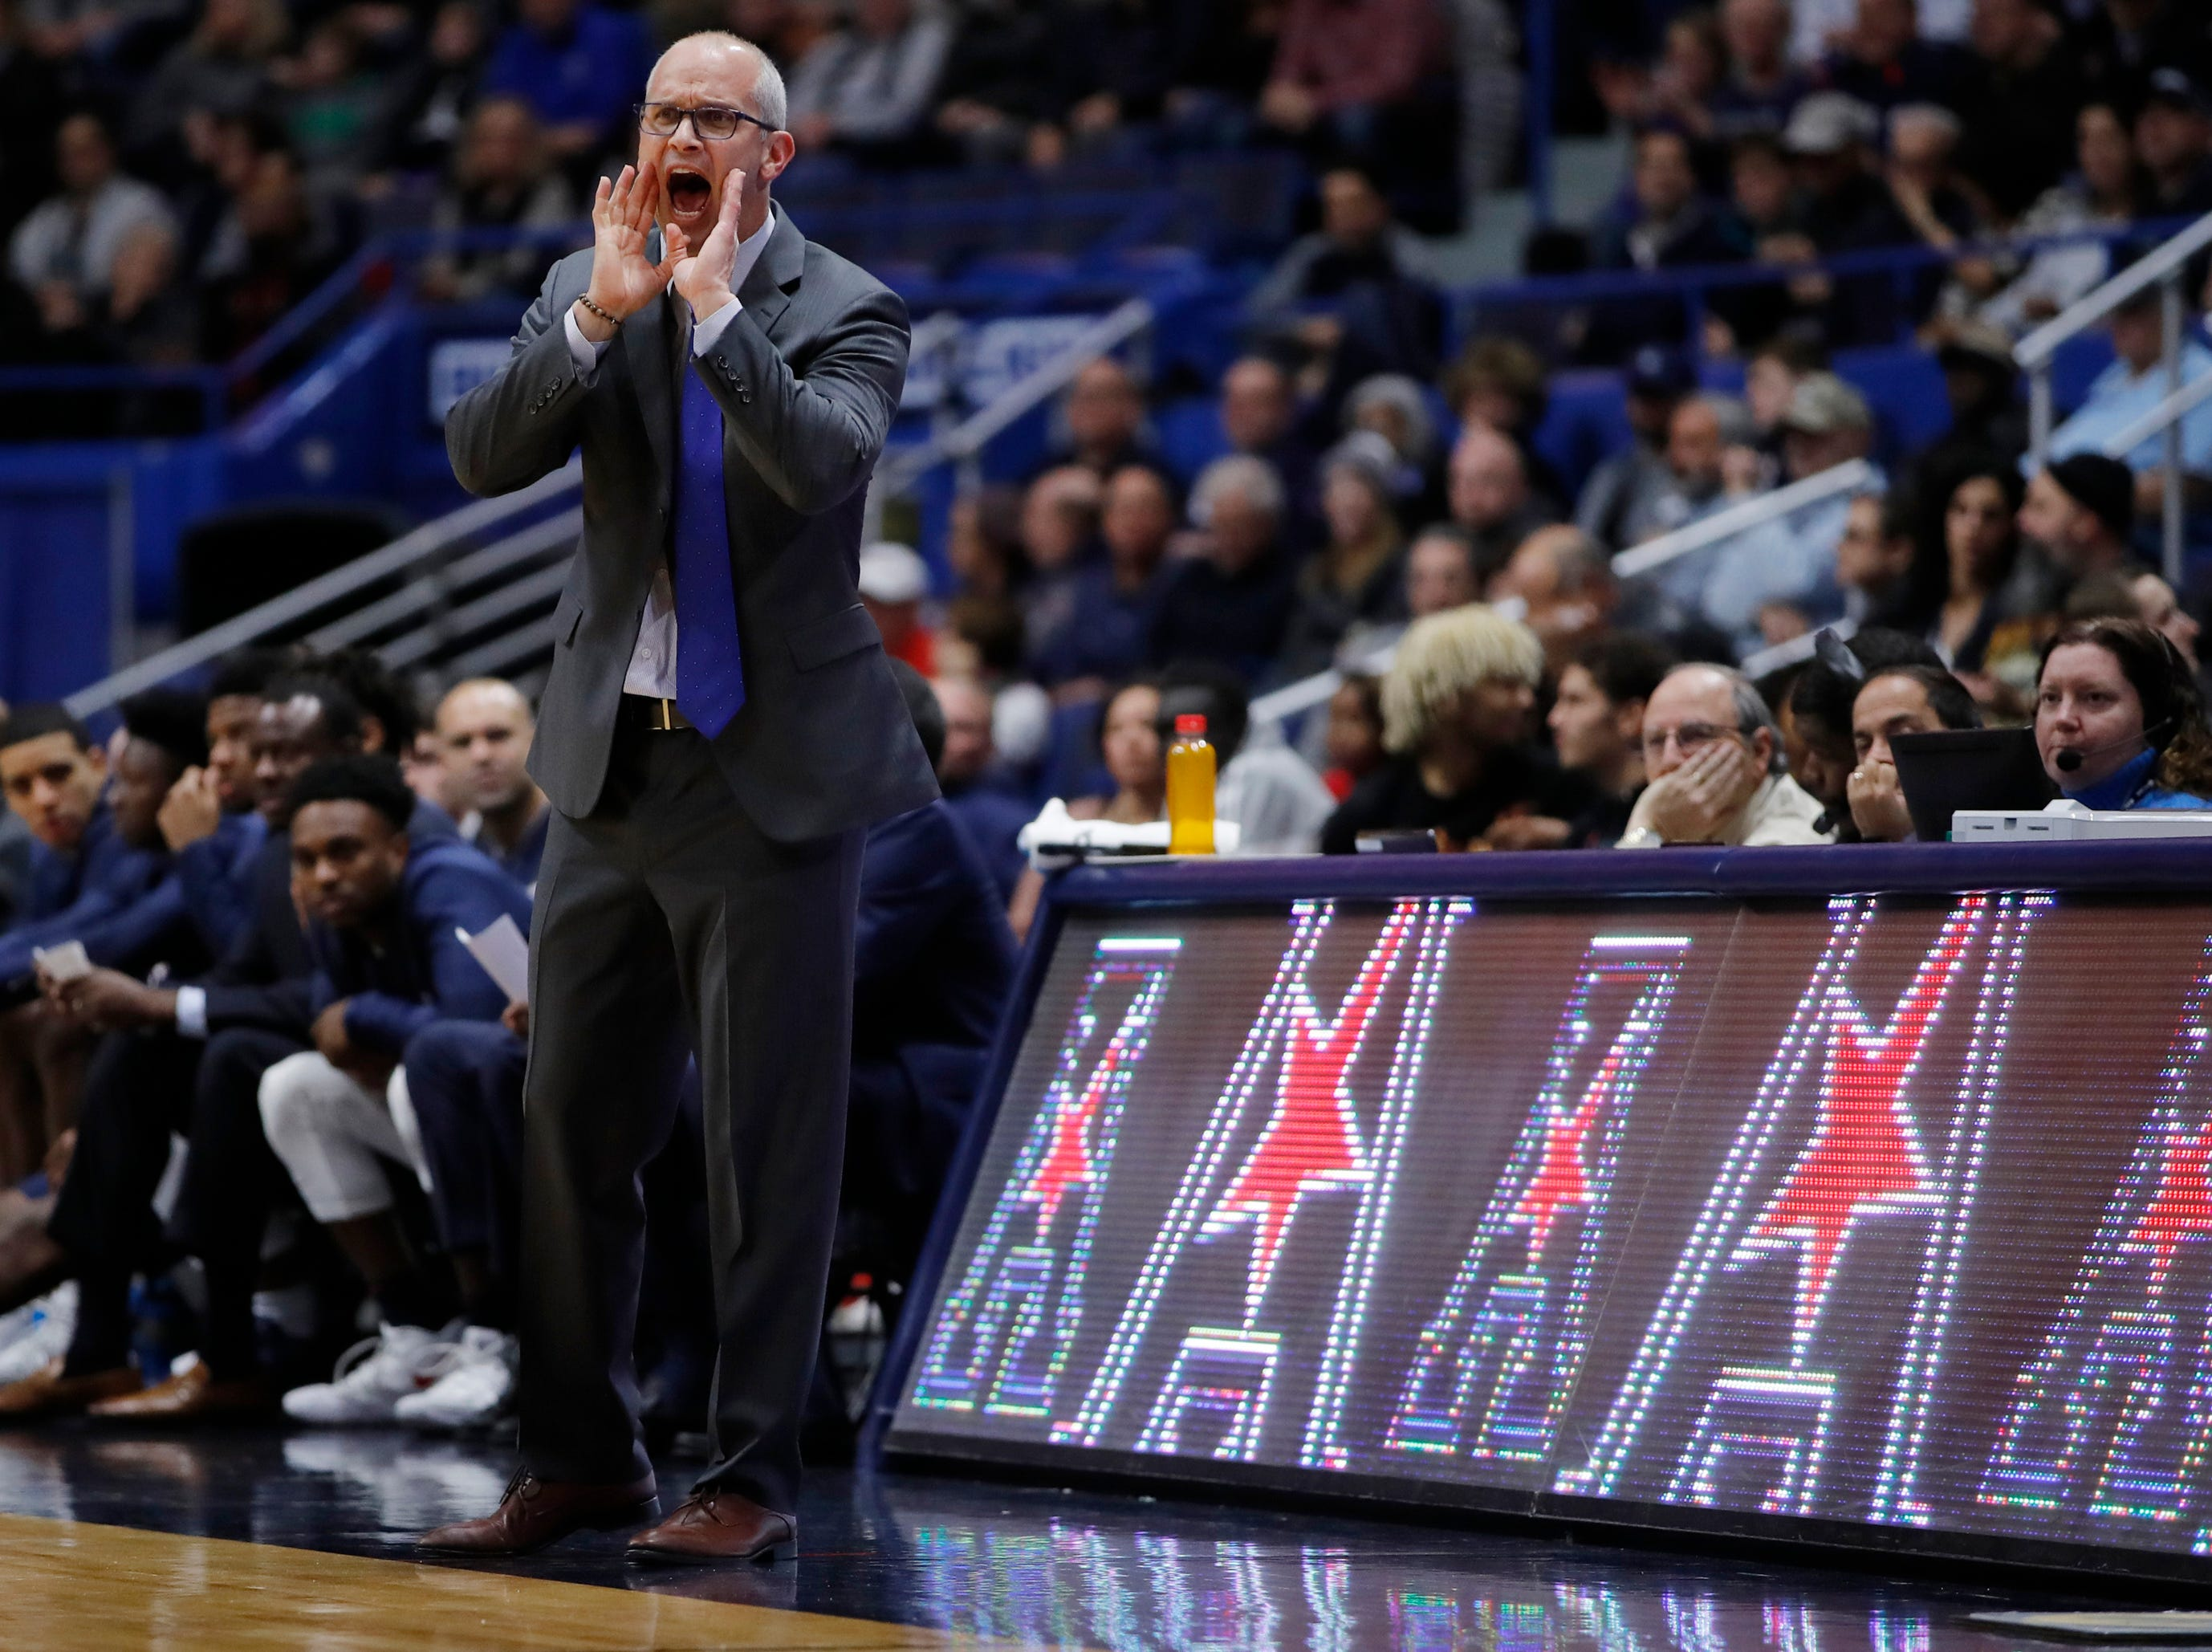 Nov 20, 2018; Storrs, CT, USA; Connecticut Huskies head coach Dan Hurley reacts from the sideline in the first half against the Cornell Big Red at XL Center. Mandatory Credit: David Butler II-USA TODAY Sports